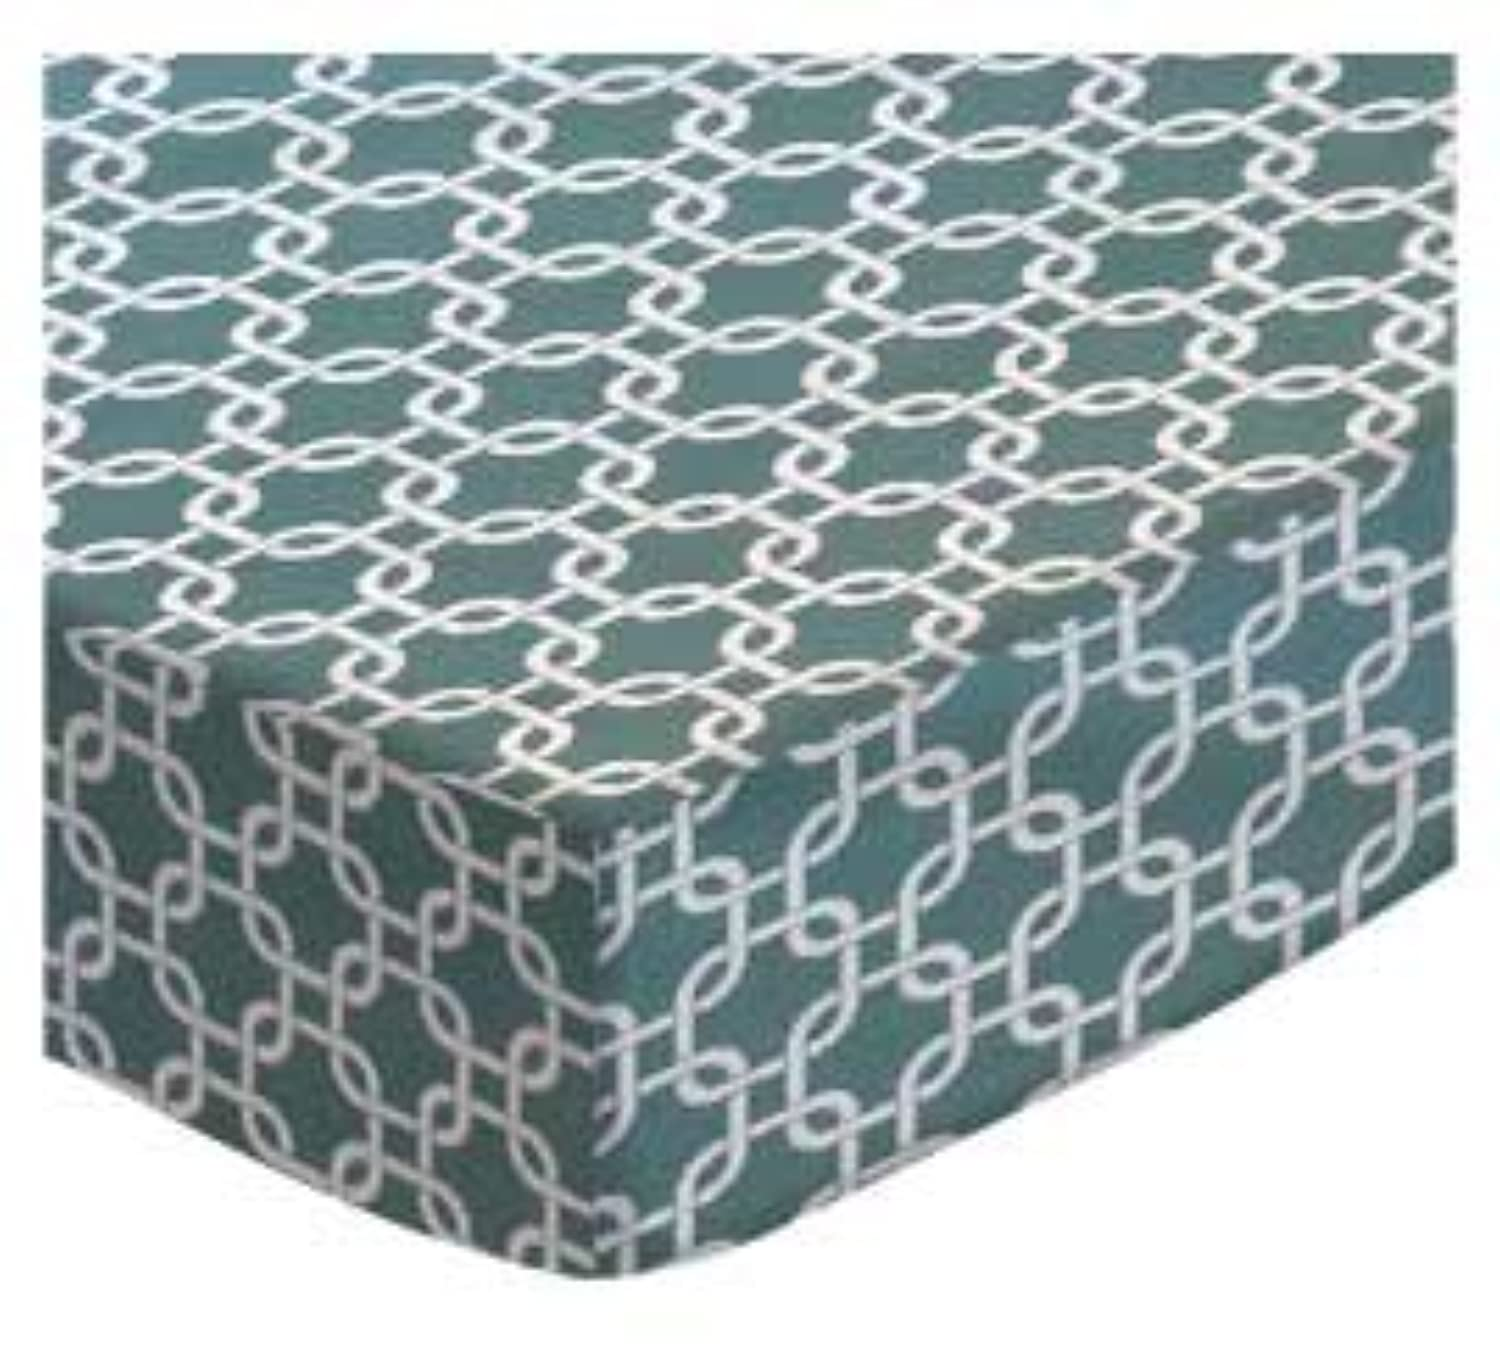 SheetWorld Fitted Square Playard Sheet 37.5 x 37.5 (Fits Joovy) - Seafoam Blue Links - Made In USA by sheetworld